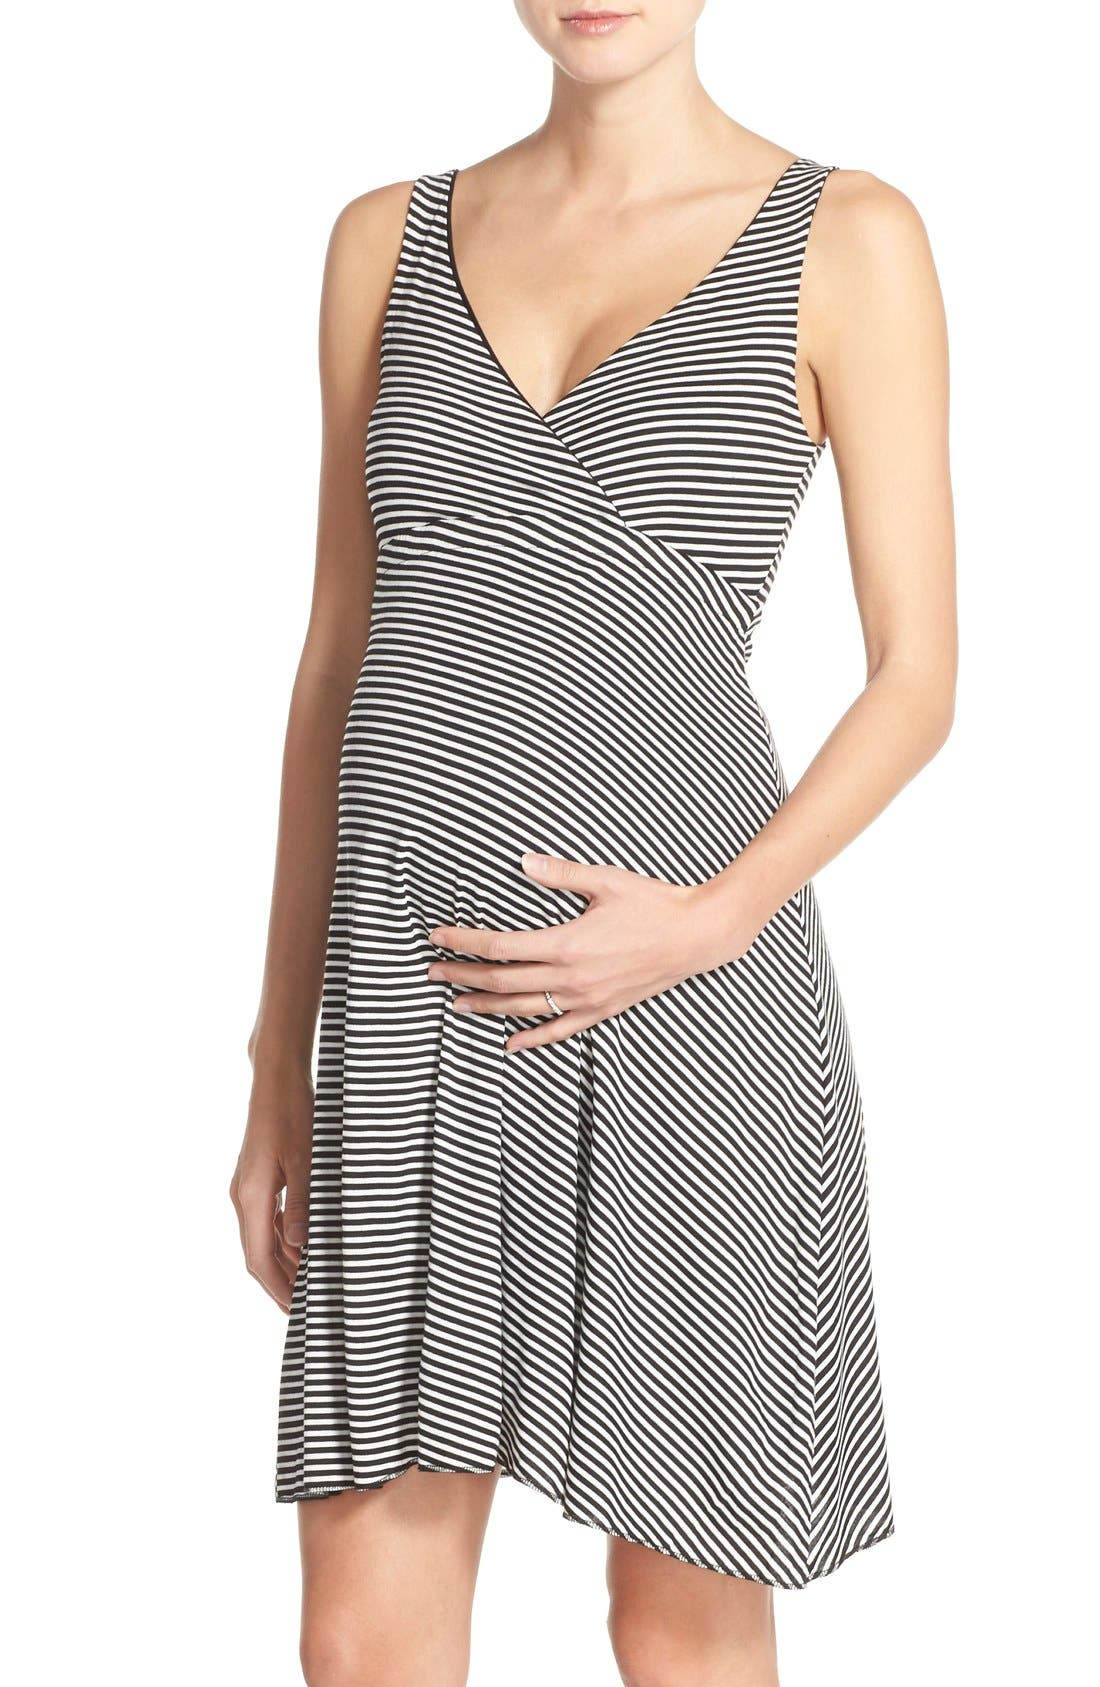 Belabumbum Reversible Nursing Dress